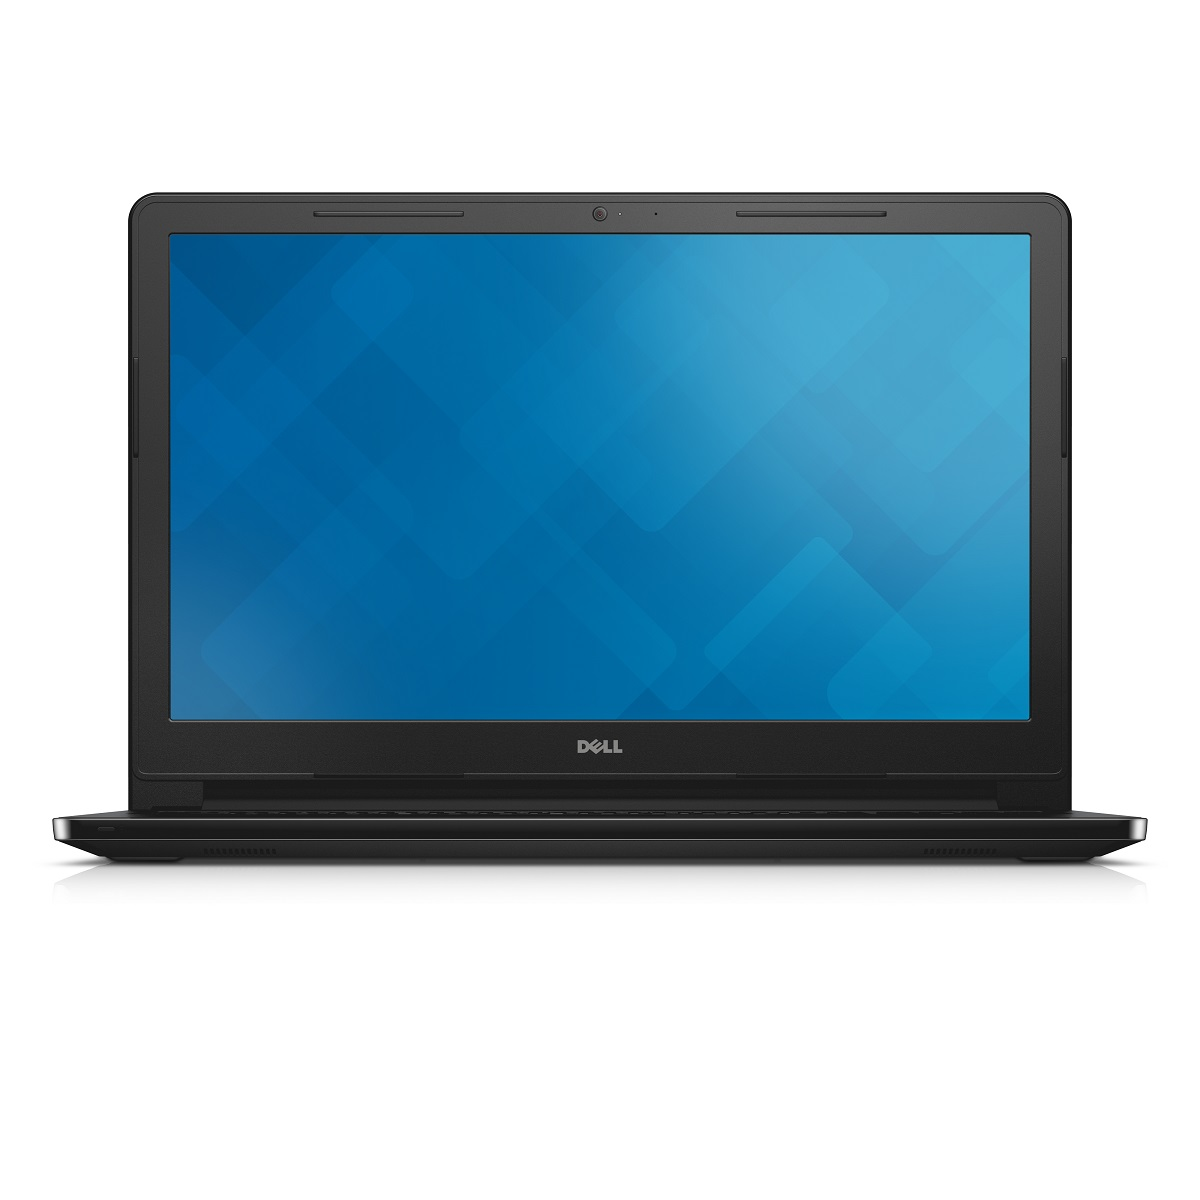 Notebook Dell Inspiron 3567 15.6 Full HD Intel Core i5-7200U RAM 4GB HDD 1TB Linux